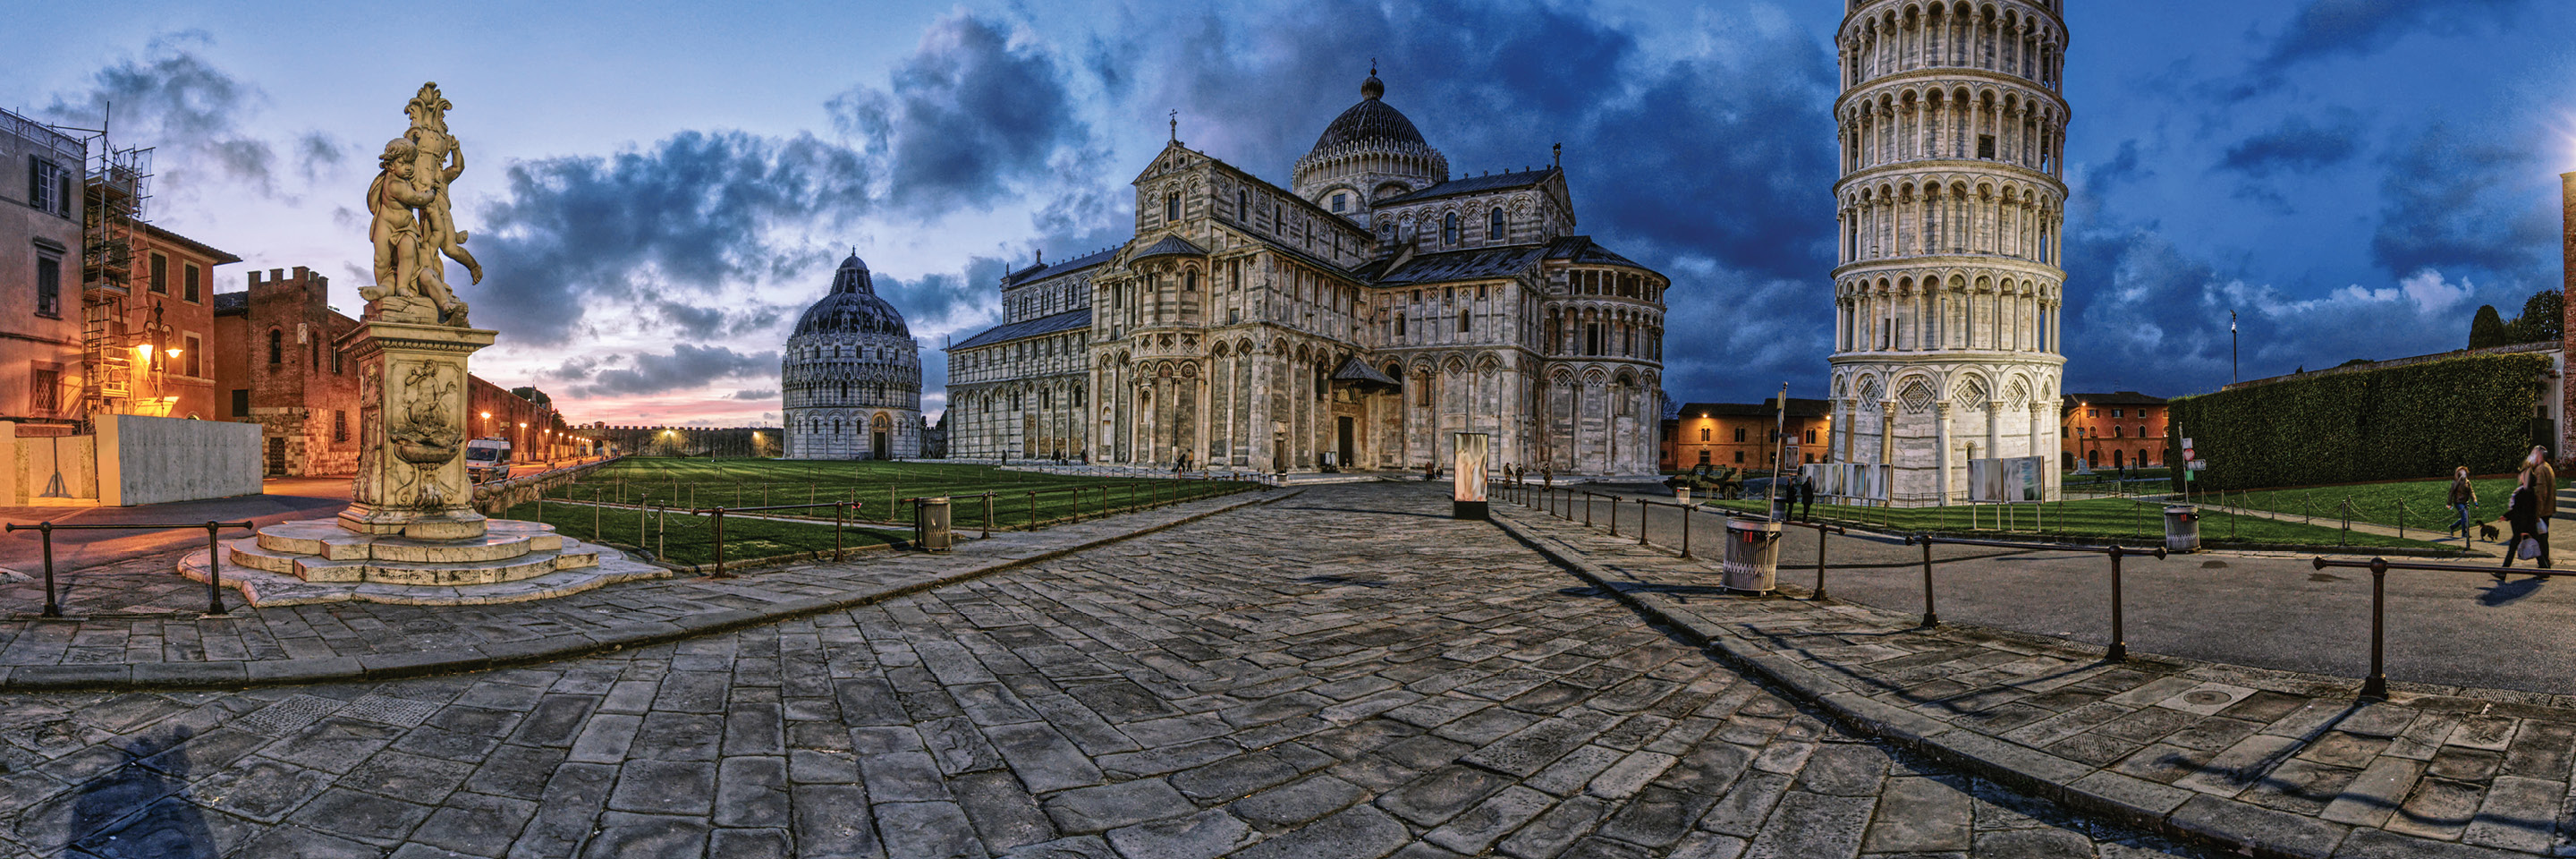 Italy's Great Cities